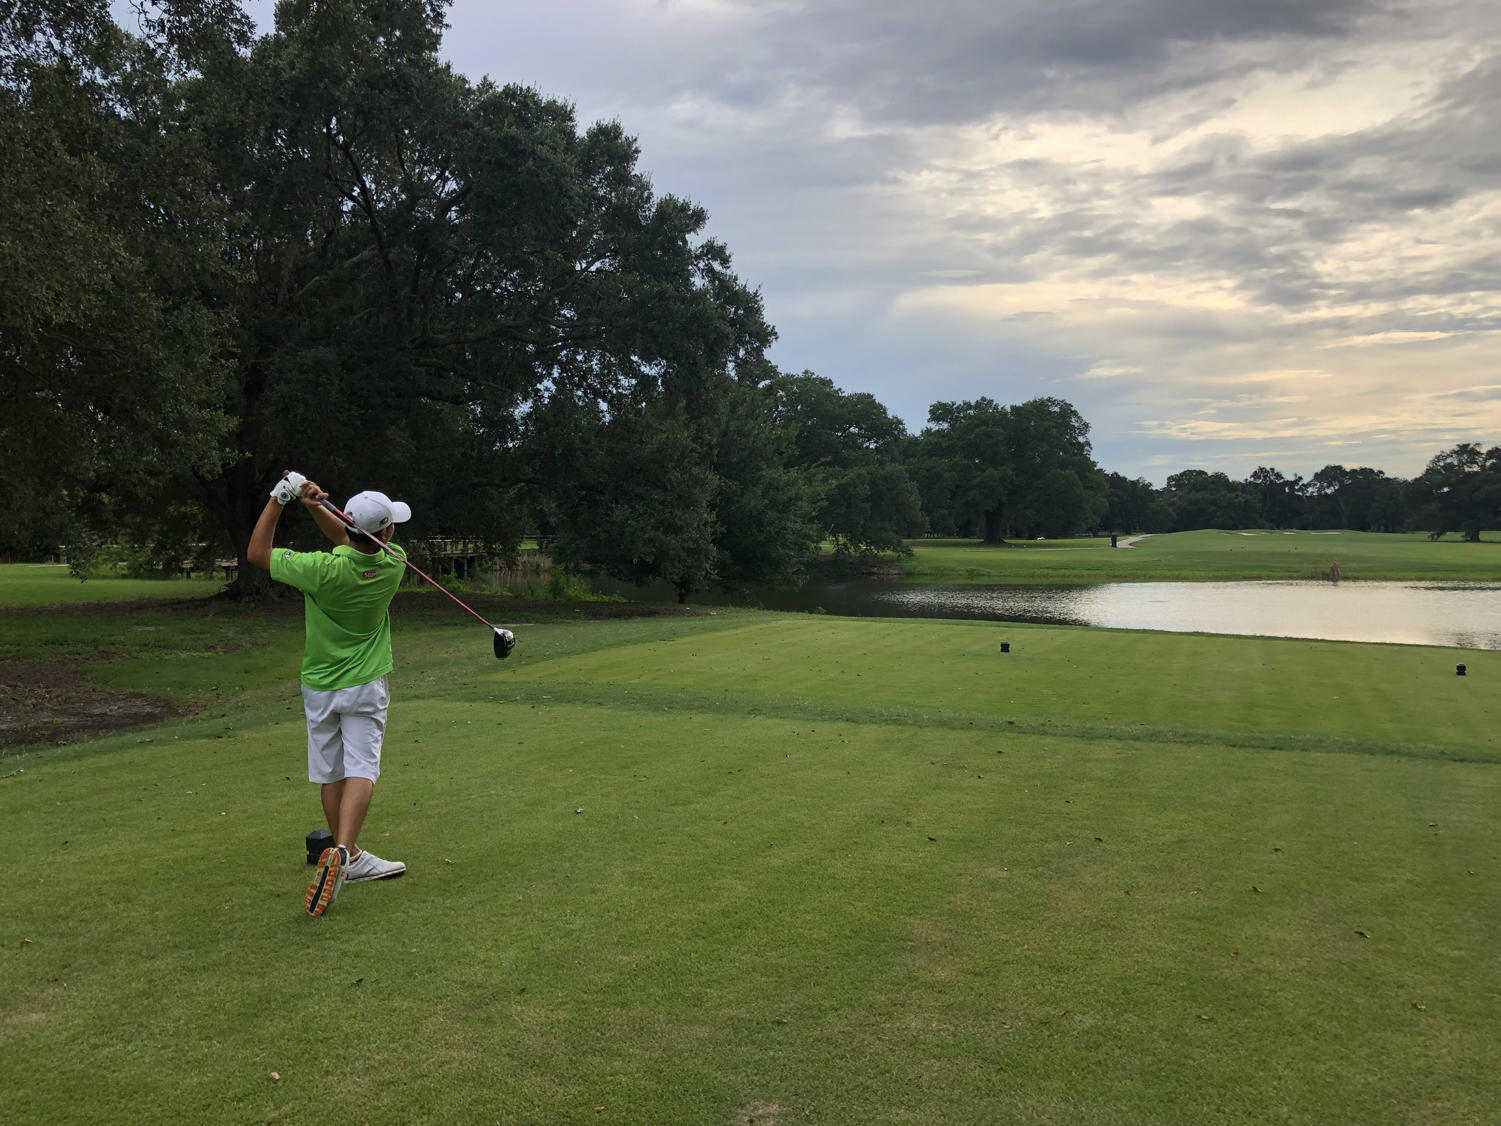 Finance freshman Chong Li Lee tees off at Bayou Oaks City Park. Li is from Johor, Malaysia, but chose Loyola  and joined the golf team. Photo credit: Drew Goff